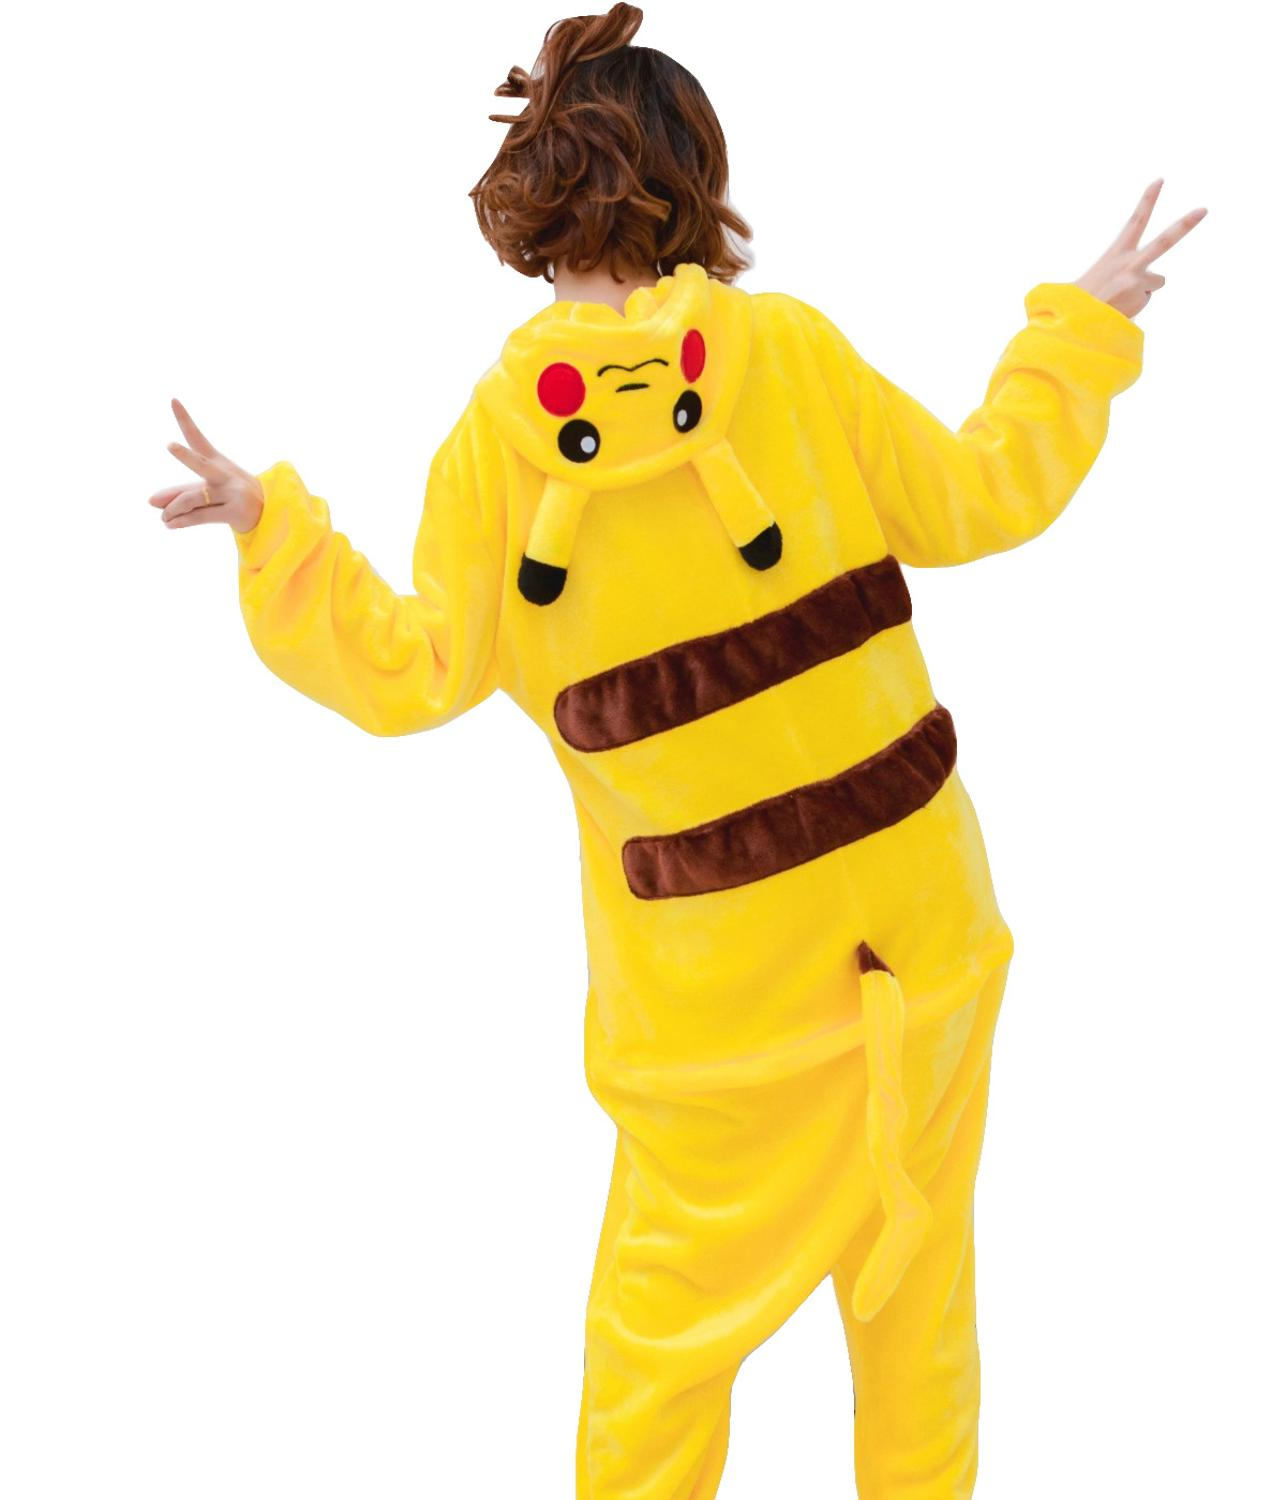 Halloween Homecoming Costume Unisex Adult Onesie Flannel Animal Anime Zipper Pikachu Pokemon Cosplay Costume